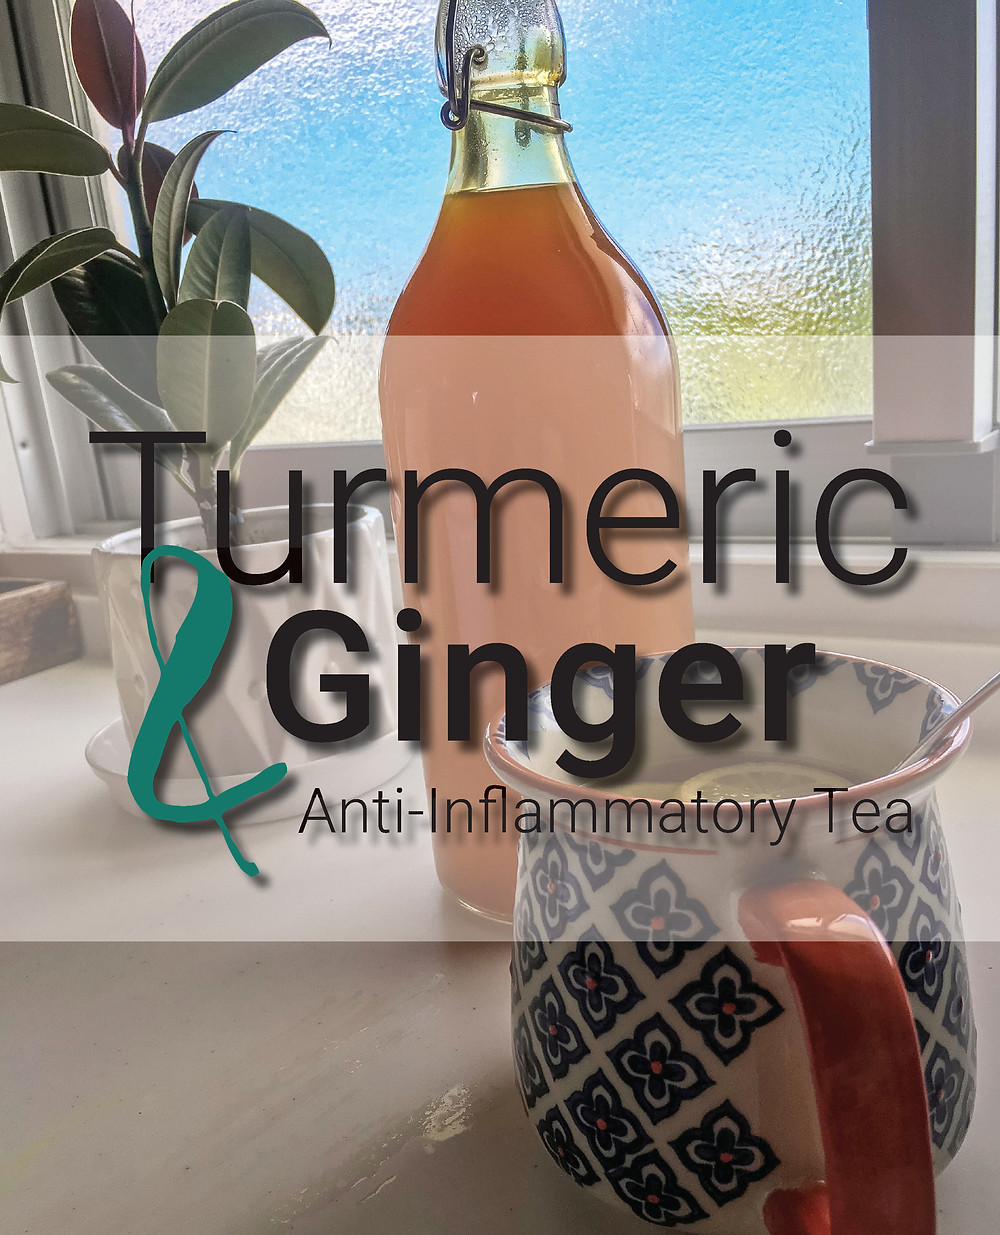 Turmeric and ginger anti-inflammatory tea